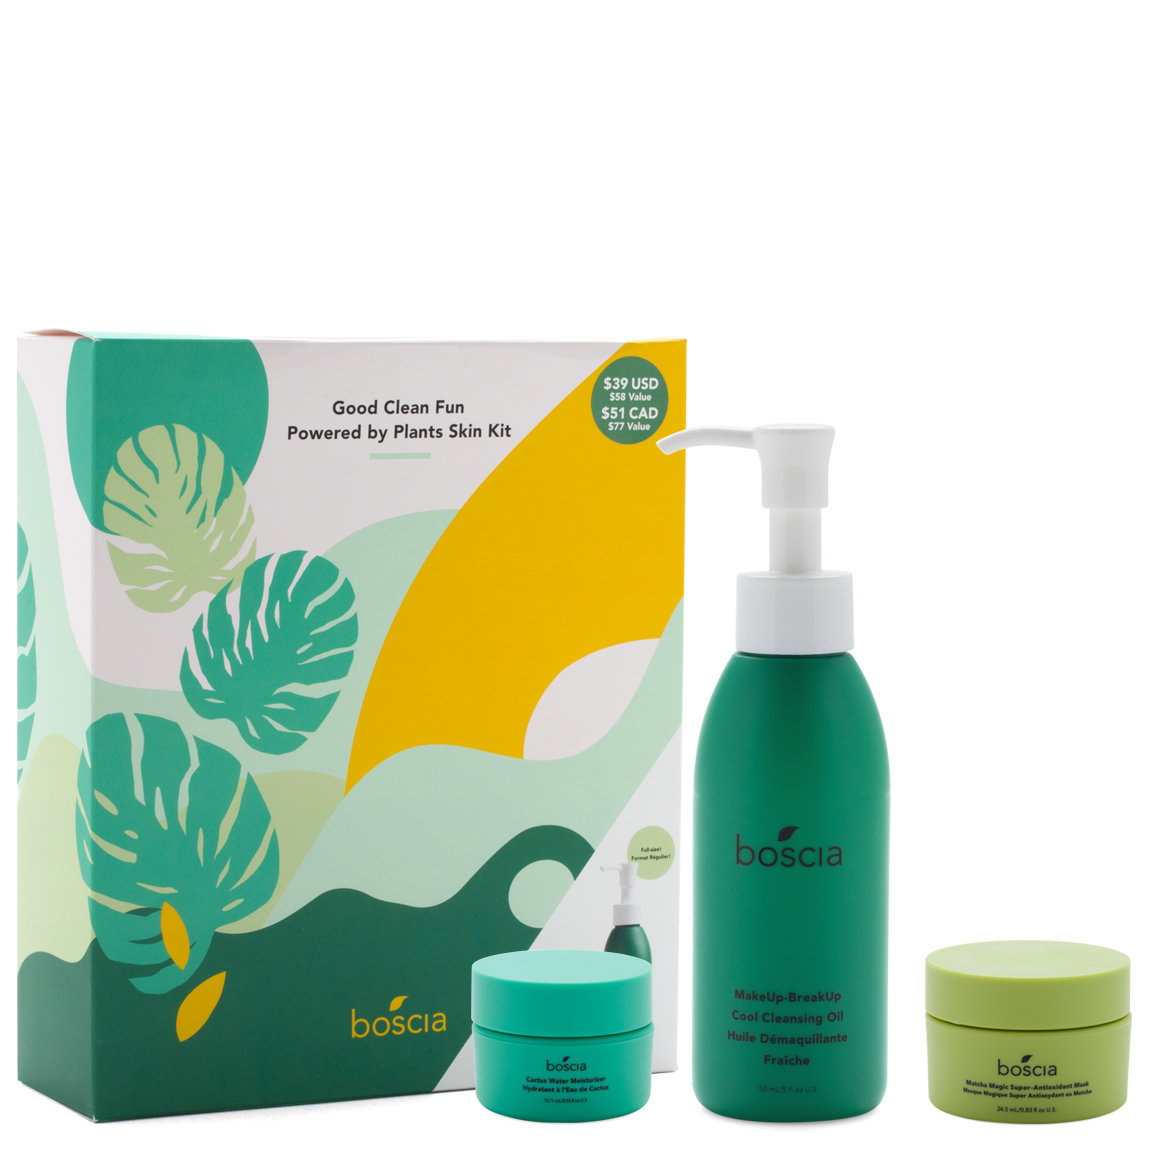 boscia Good Clean Fun - Powered By Plants Skin Kit product swatch.